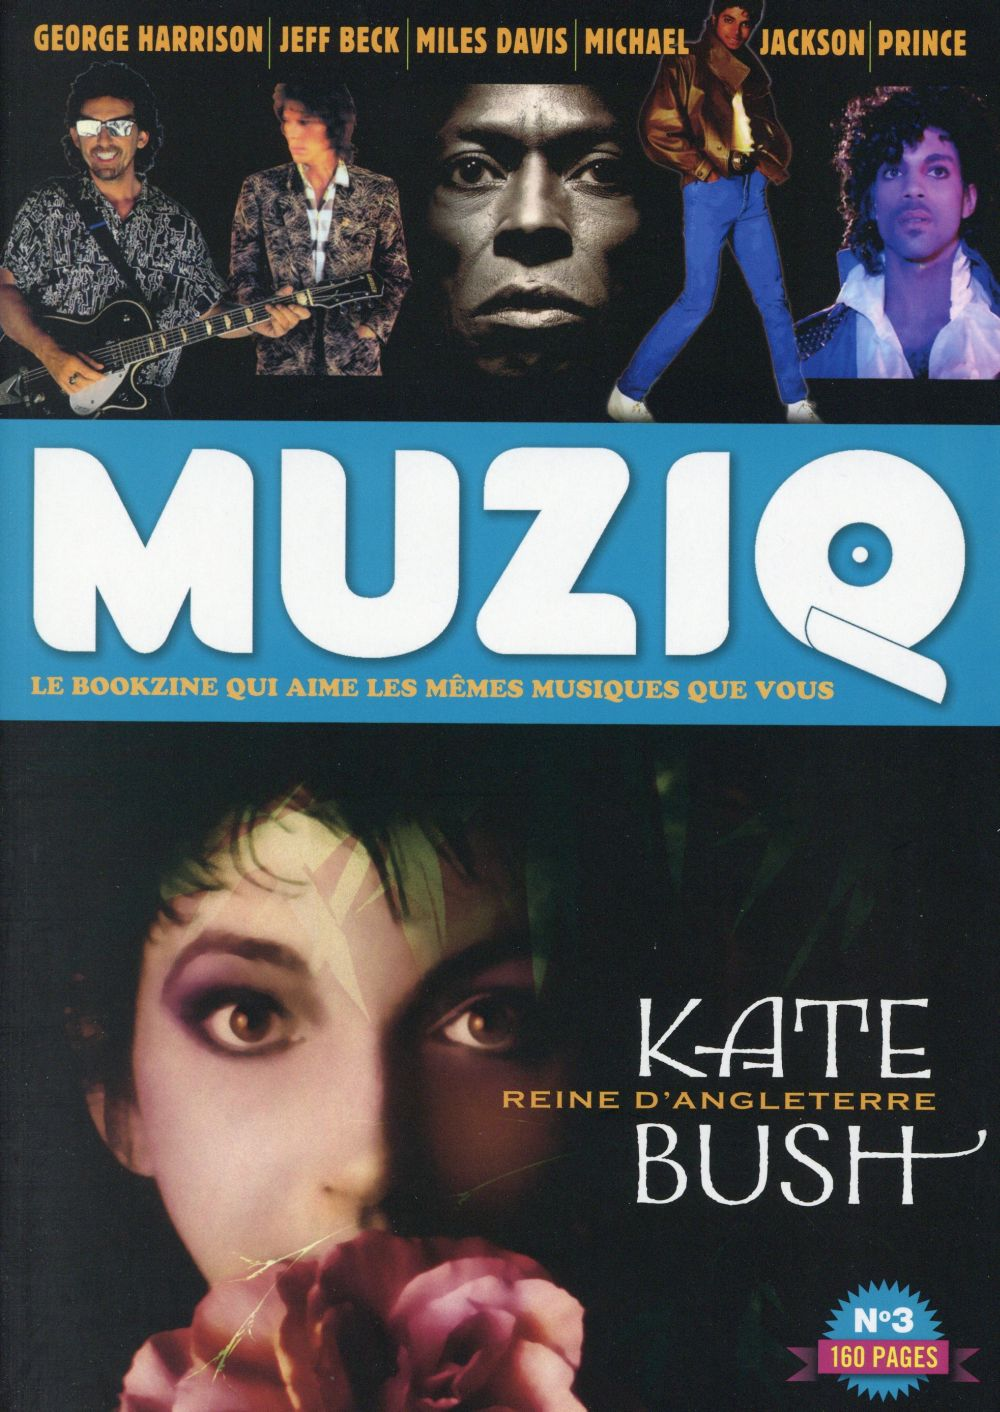 MUZIQ - NUMERO 3 KATE BUSH